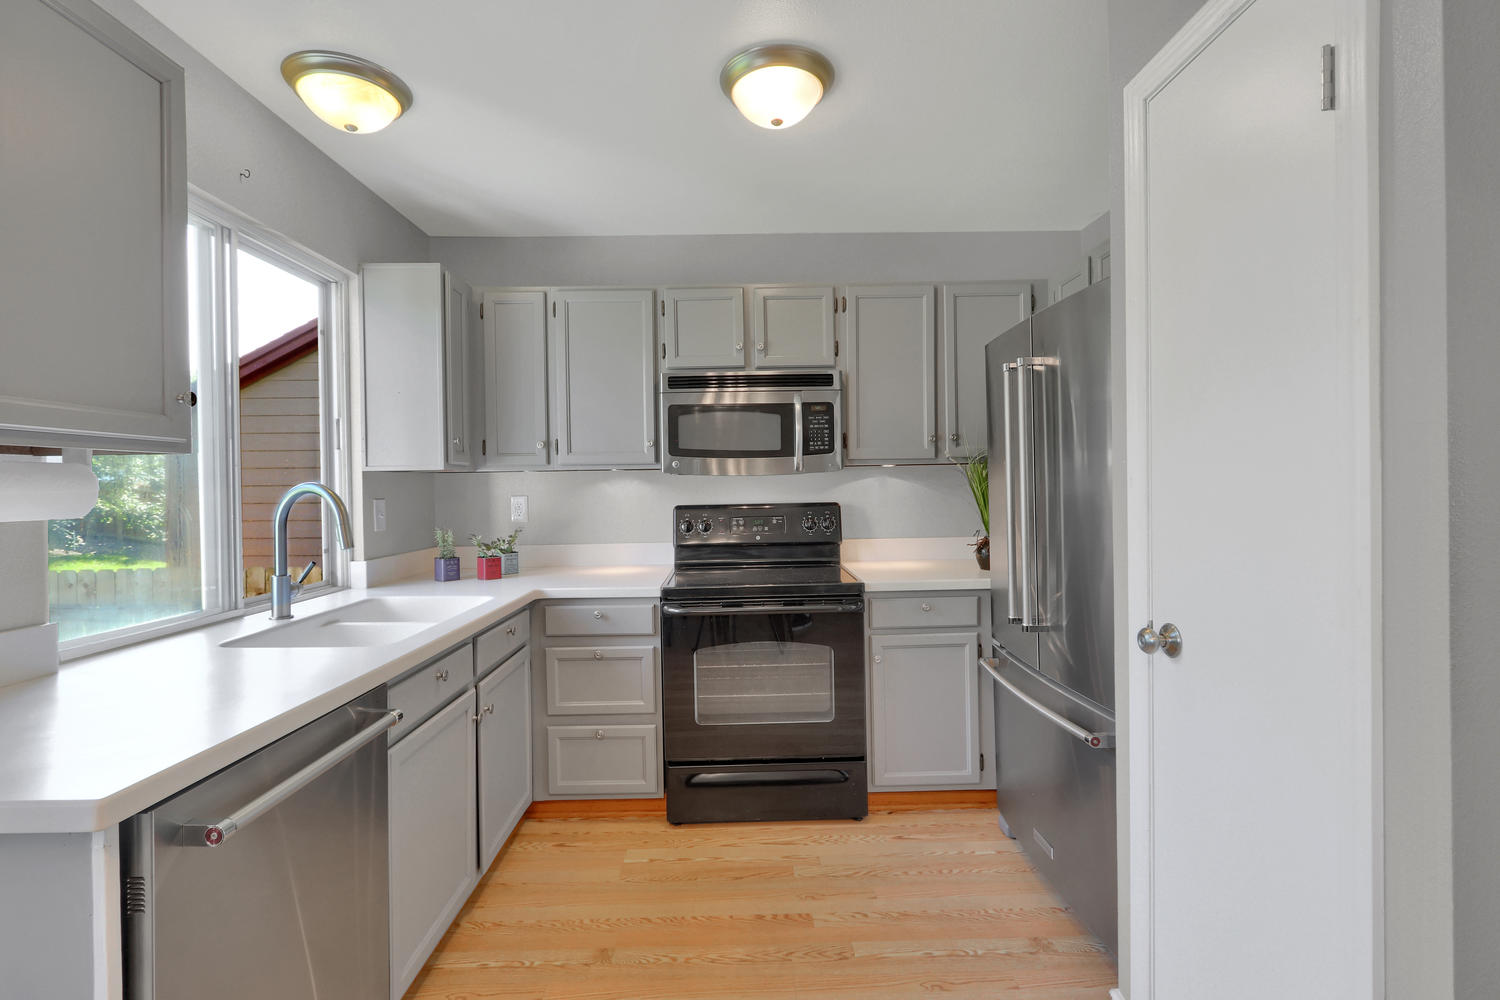 11246 W 104th Ave Westminster-large-010-011-Kitchen-1500x1000-72dpi.jpg